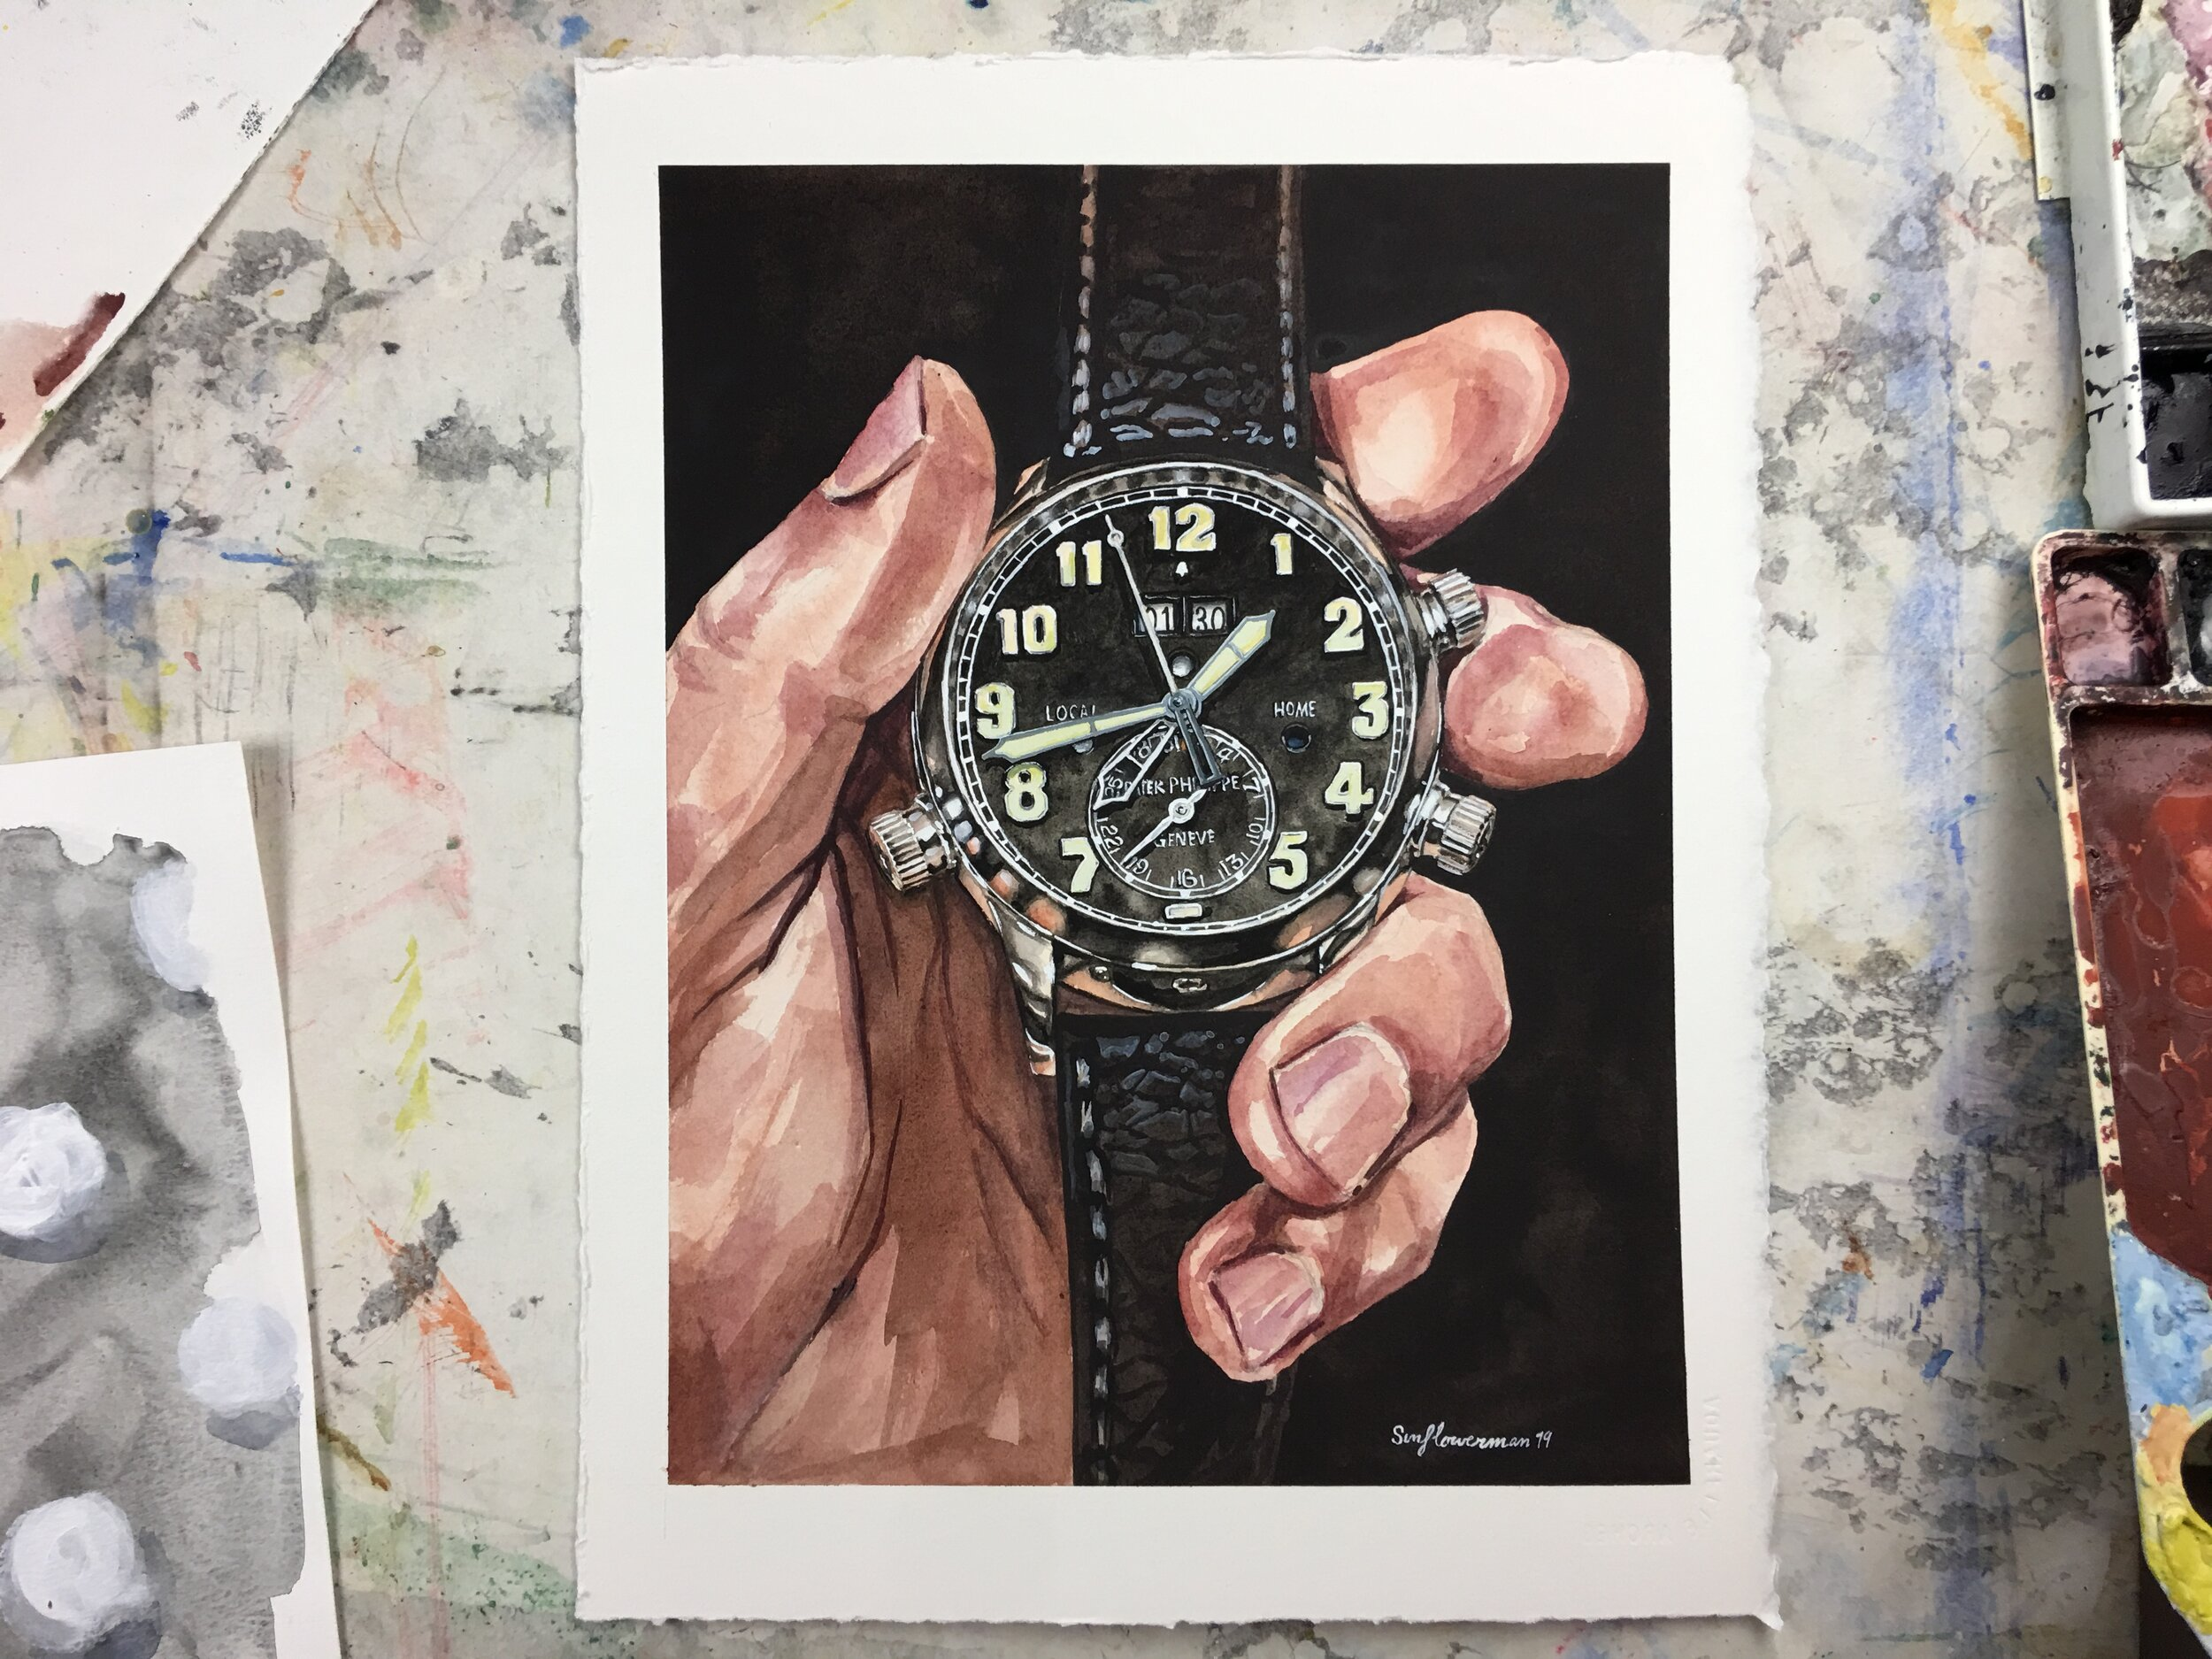 Patek Philippe 5520 watercolor illustration by Sunflowerman for Revolution Magazine